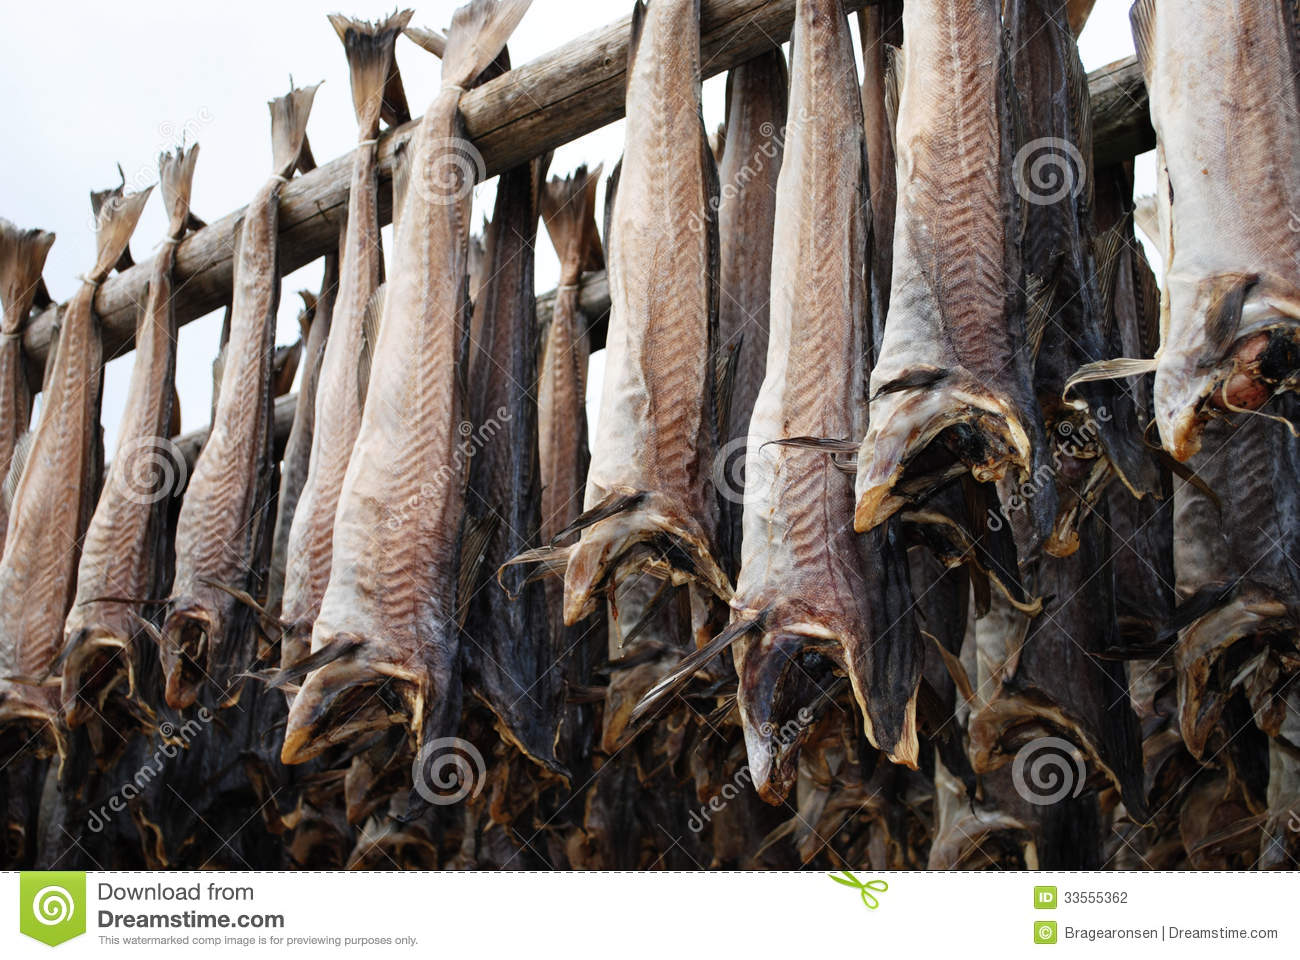 Clipart Dried Fish